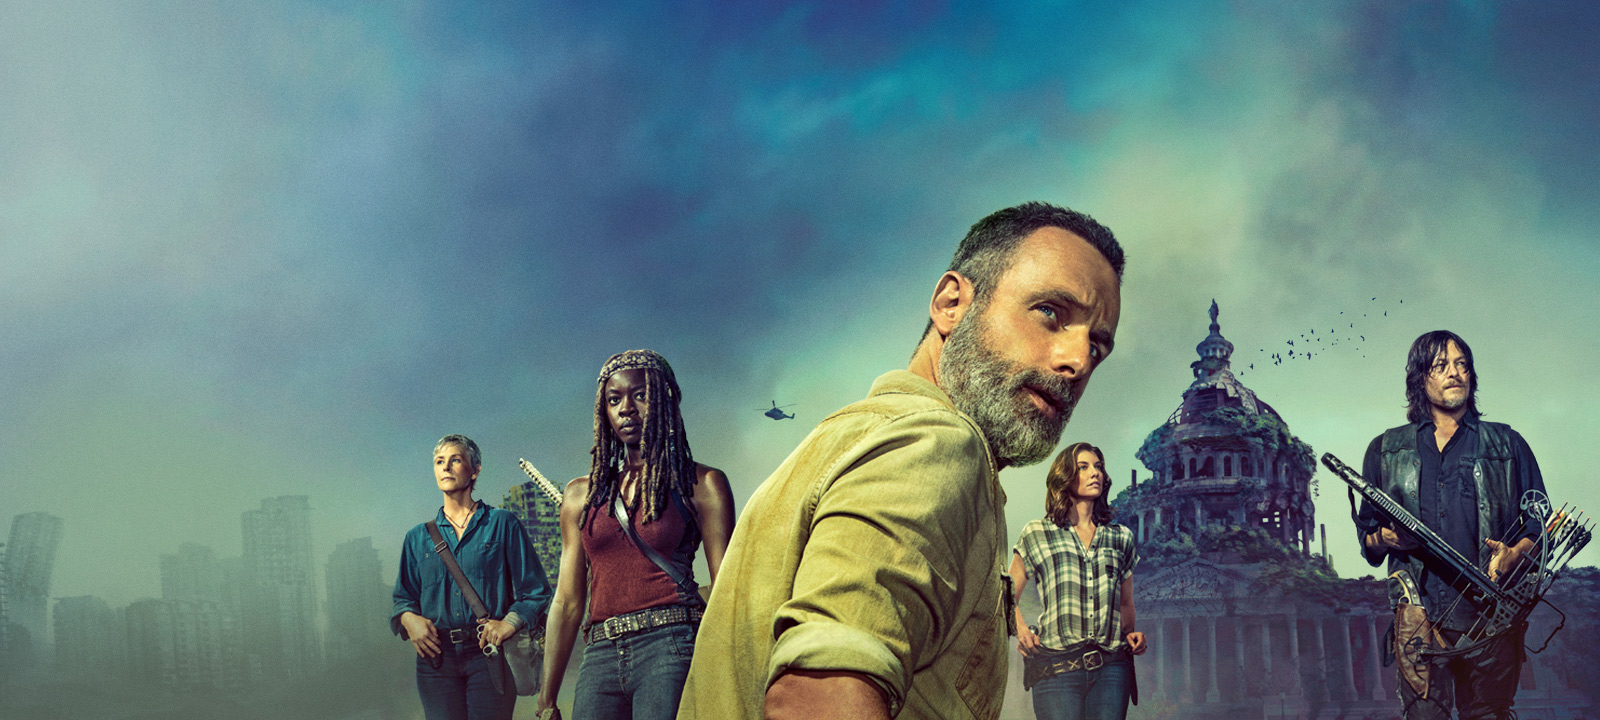 the-walking-dead-season-9-cci-michonne-gurira-rick-lincoln-key-art-800×600